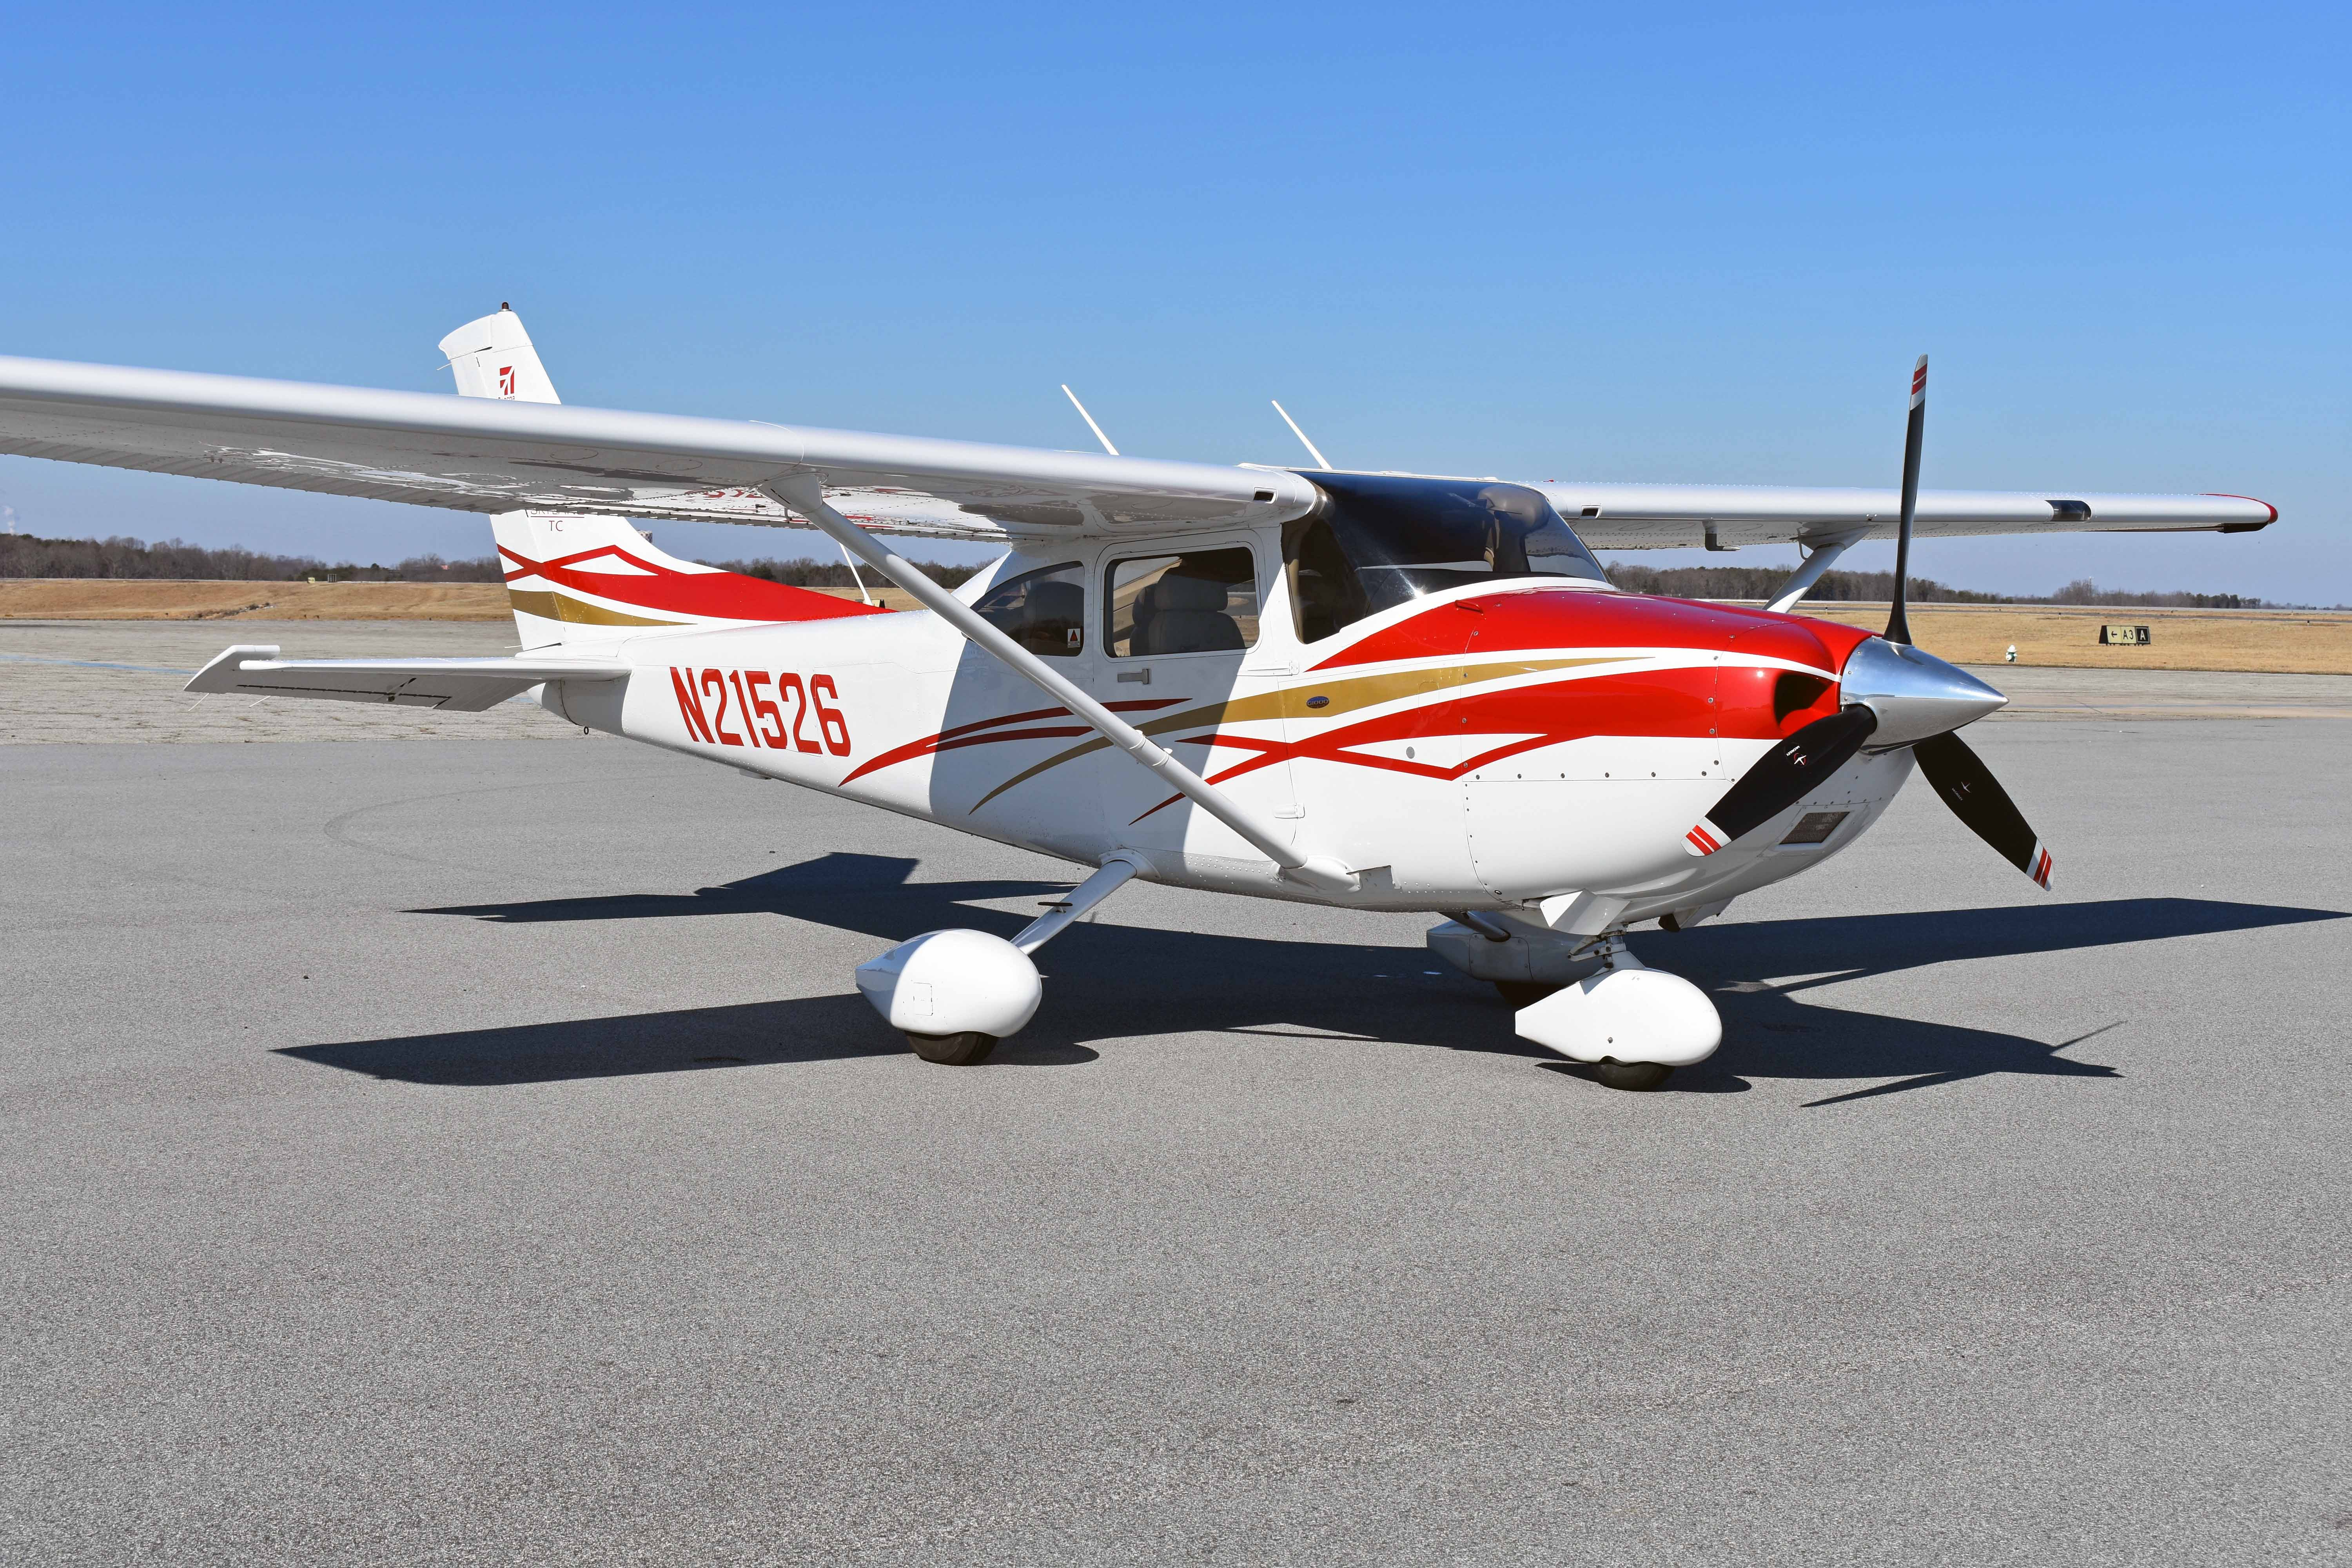 6000x4000 cessna background cessna Tokkorocom Amazing HD 6000x4000